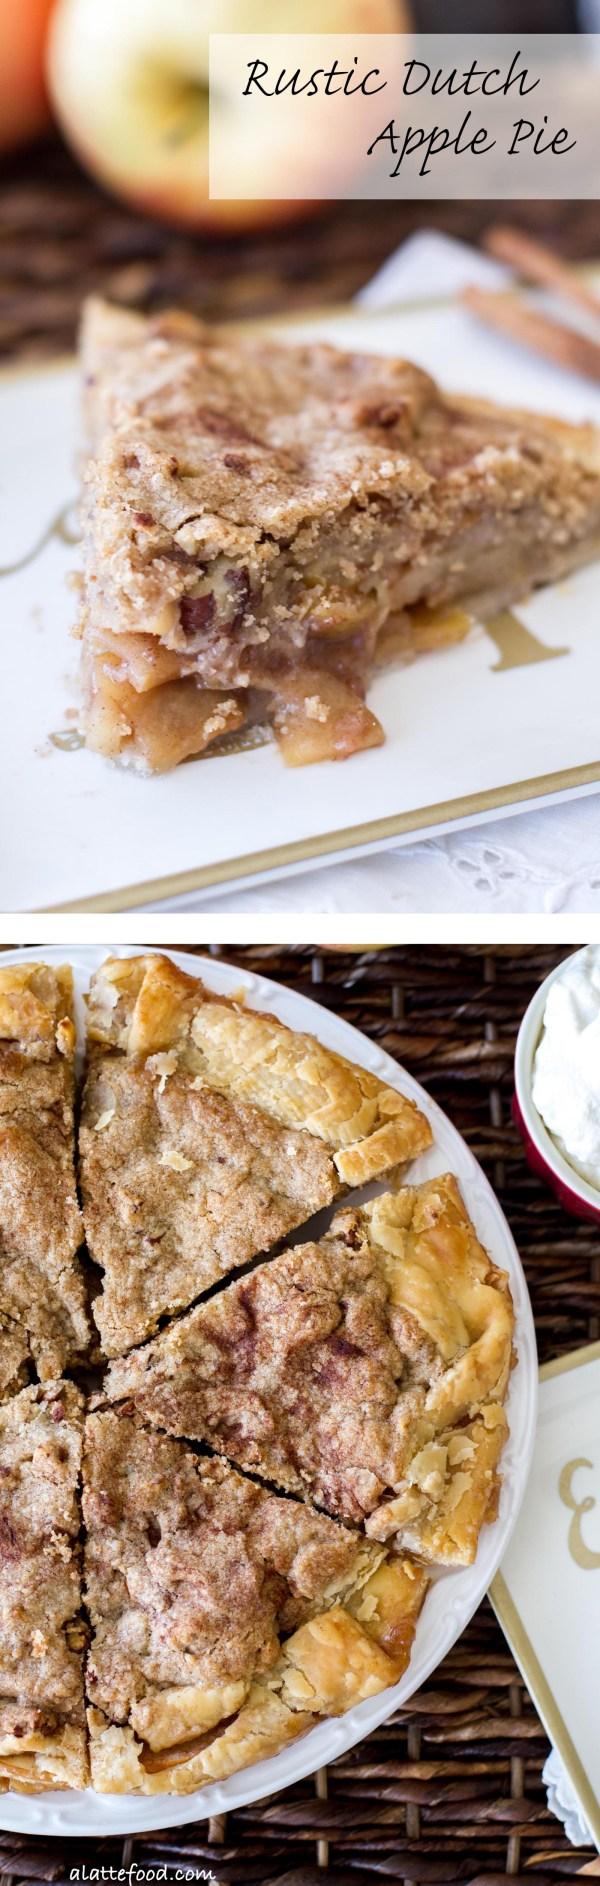 This easy apple pie recipe is full of sweet apples, cinnamon sugar, and topped with a Dutch apple crust!